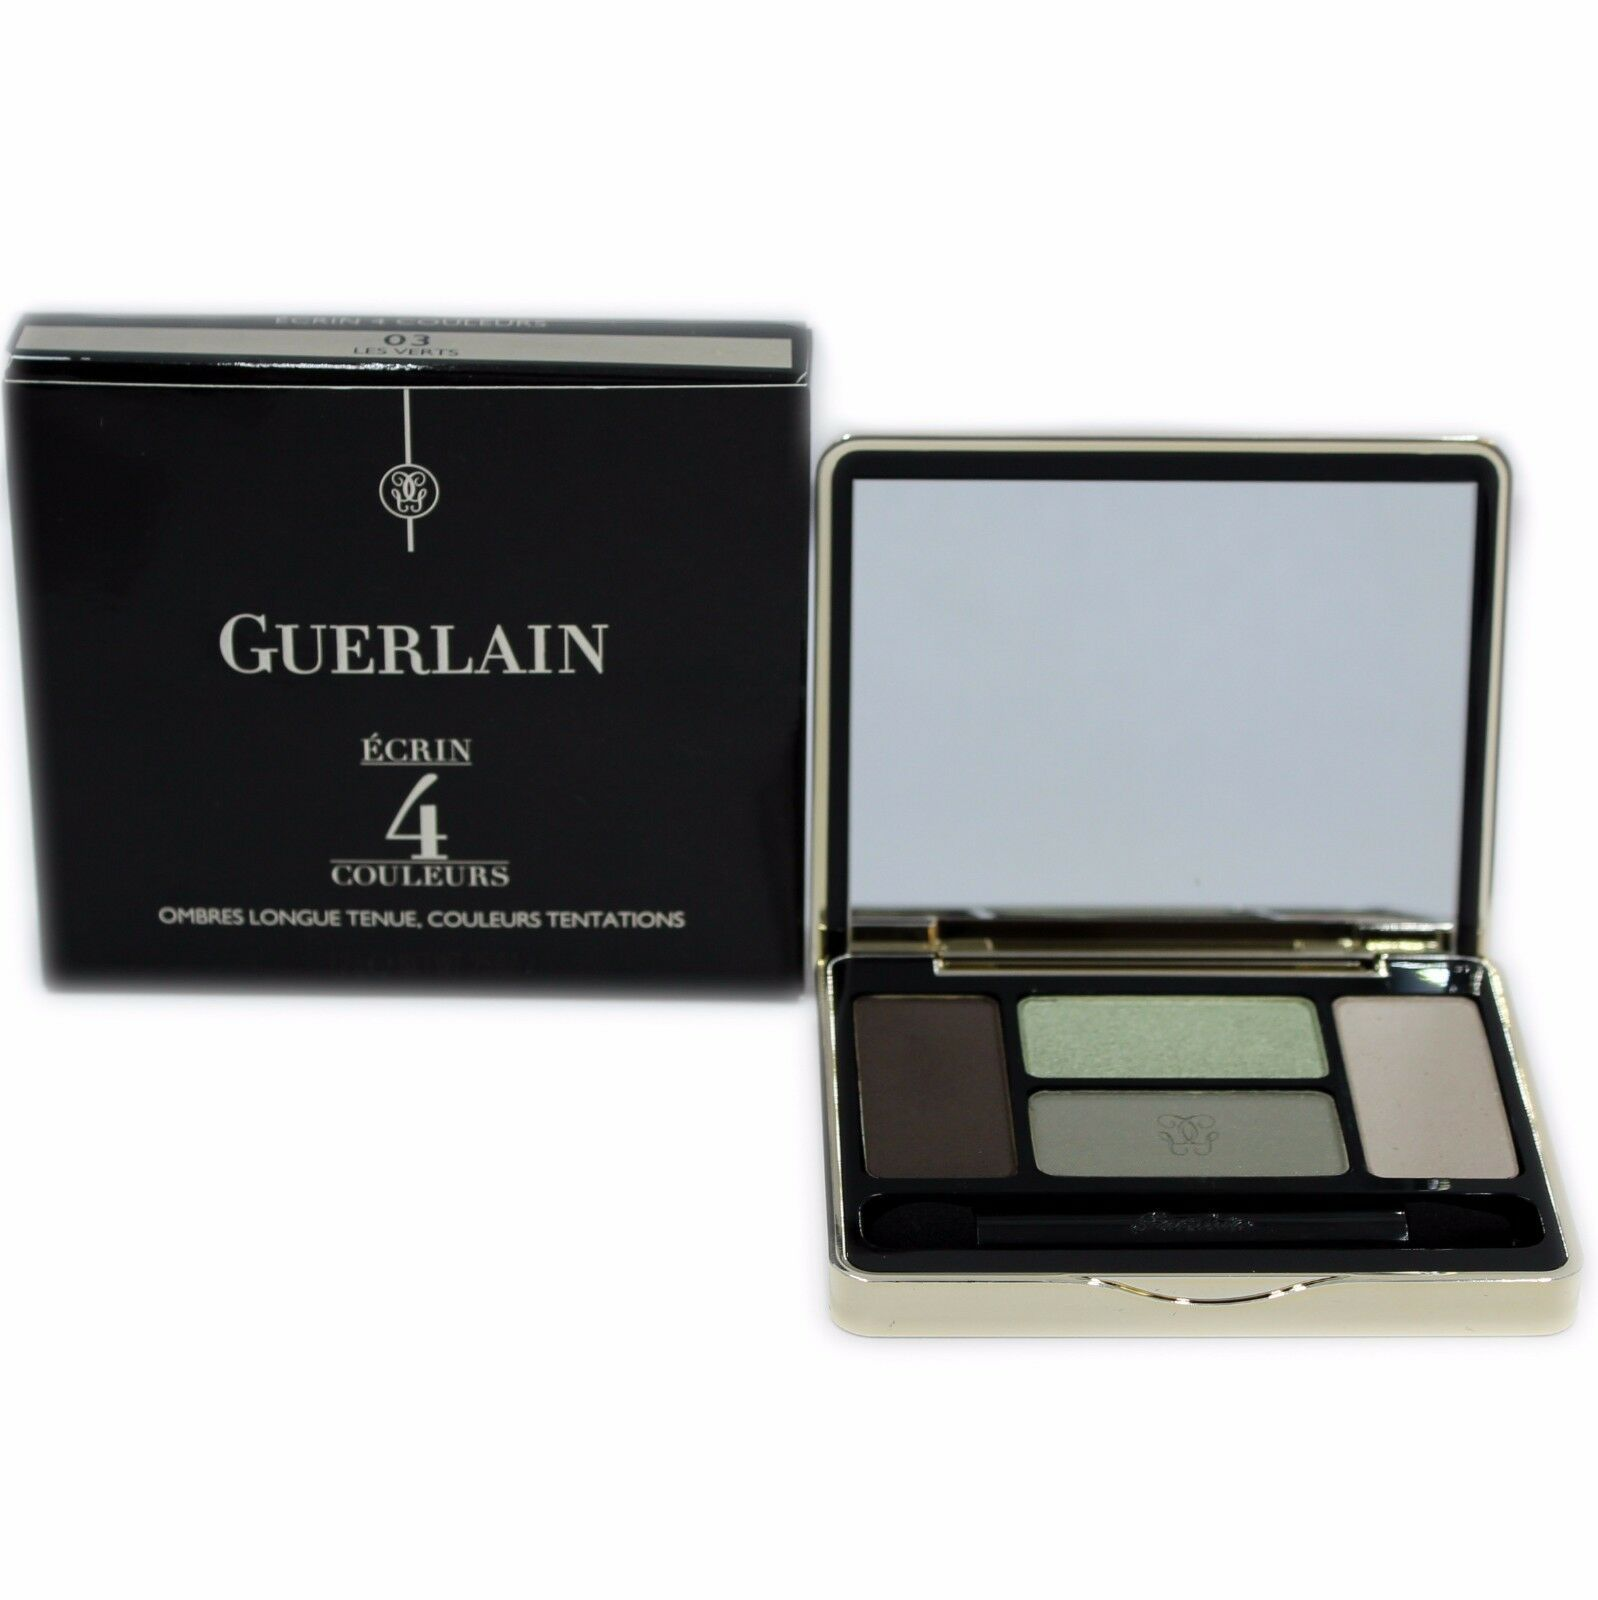 Primary image for GUERLAIN ECRIN 4 COULEURS LONG-LASTING EYESHADOWS 7.2G #03 LES VERTS-G41147